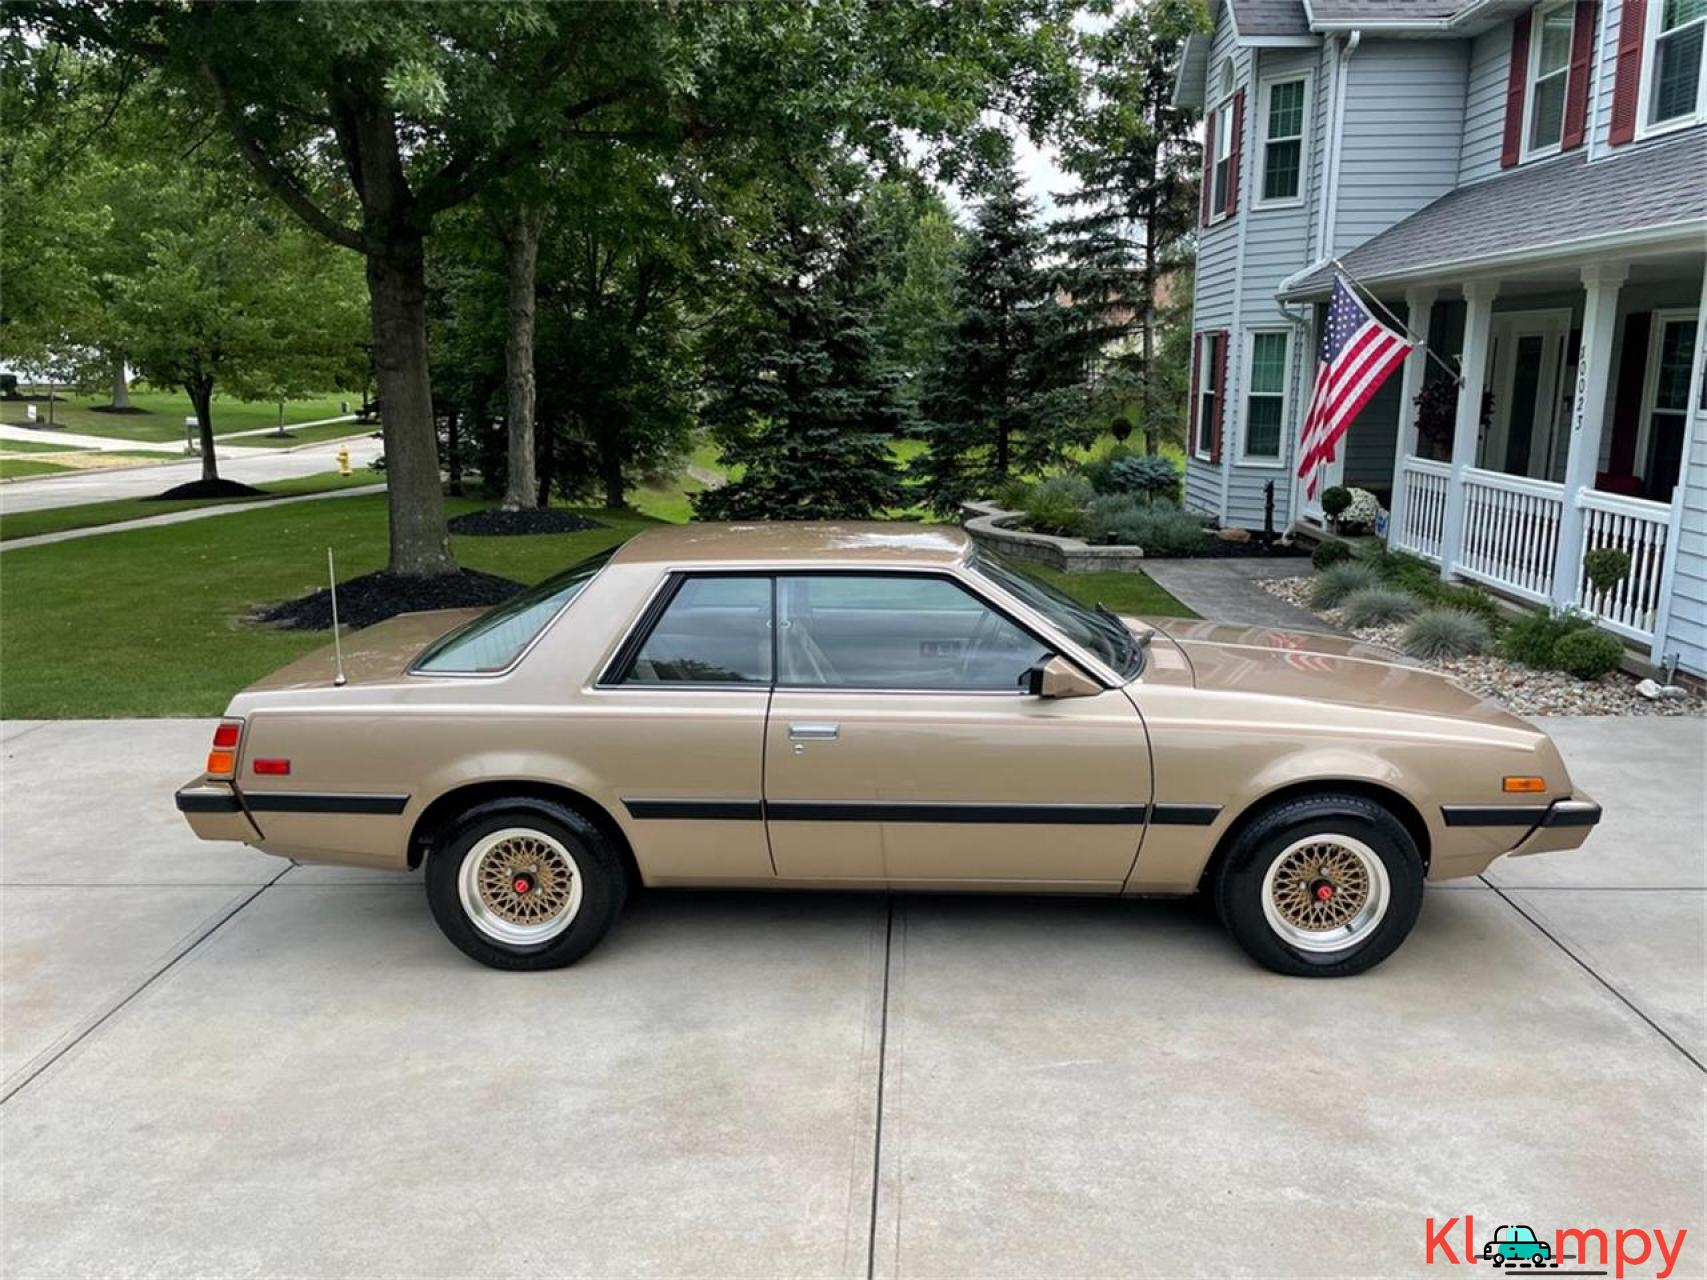 1983 Plymouth Sapporo 2.6L Engine - 9/18